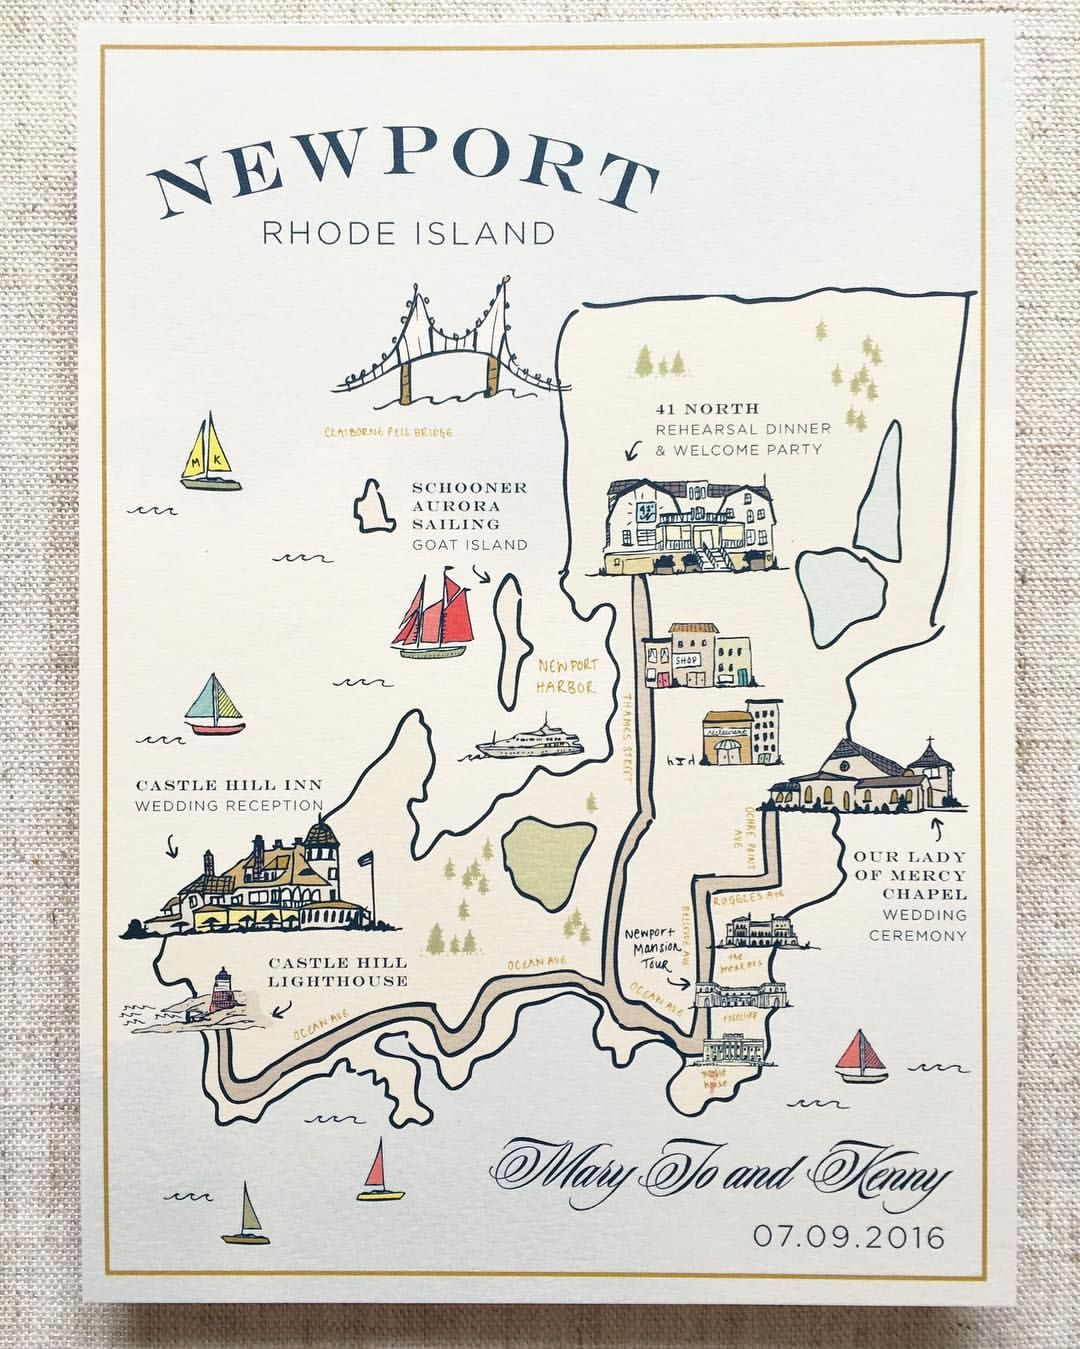 Rhode Island Wedding Invitation Printed: Custom Illustrated Map, Wedding Map, Illustration, Welcome